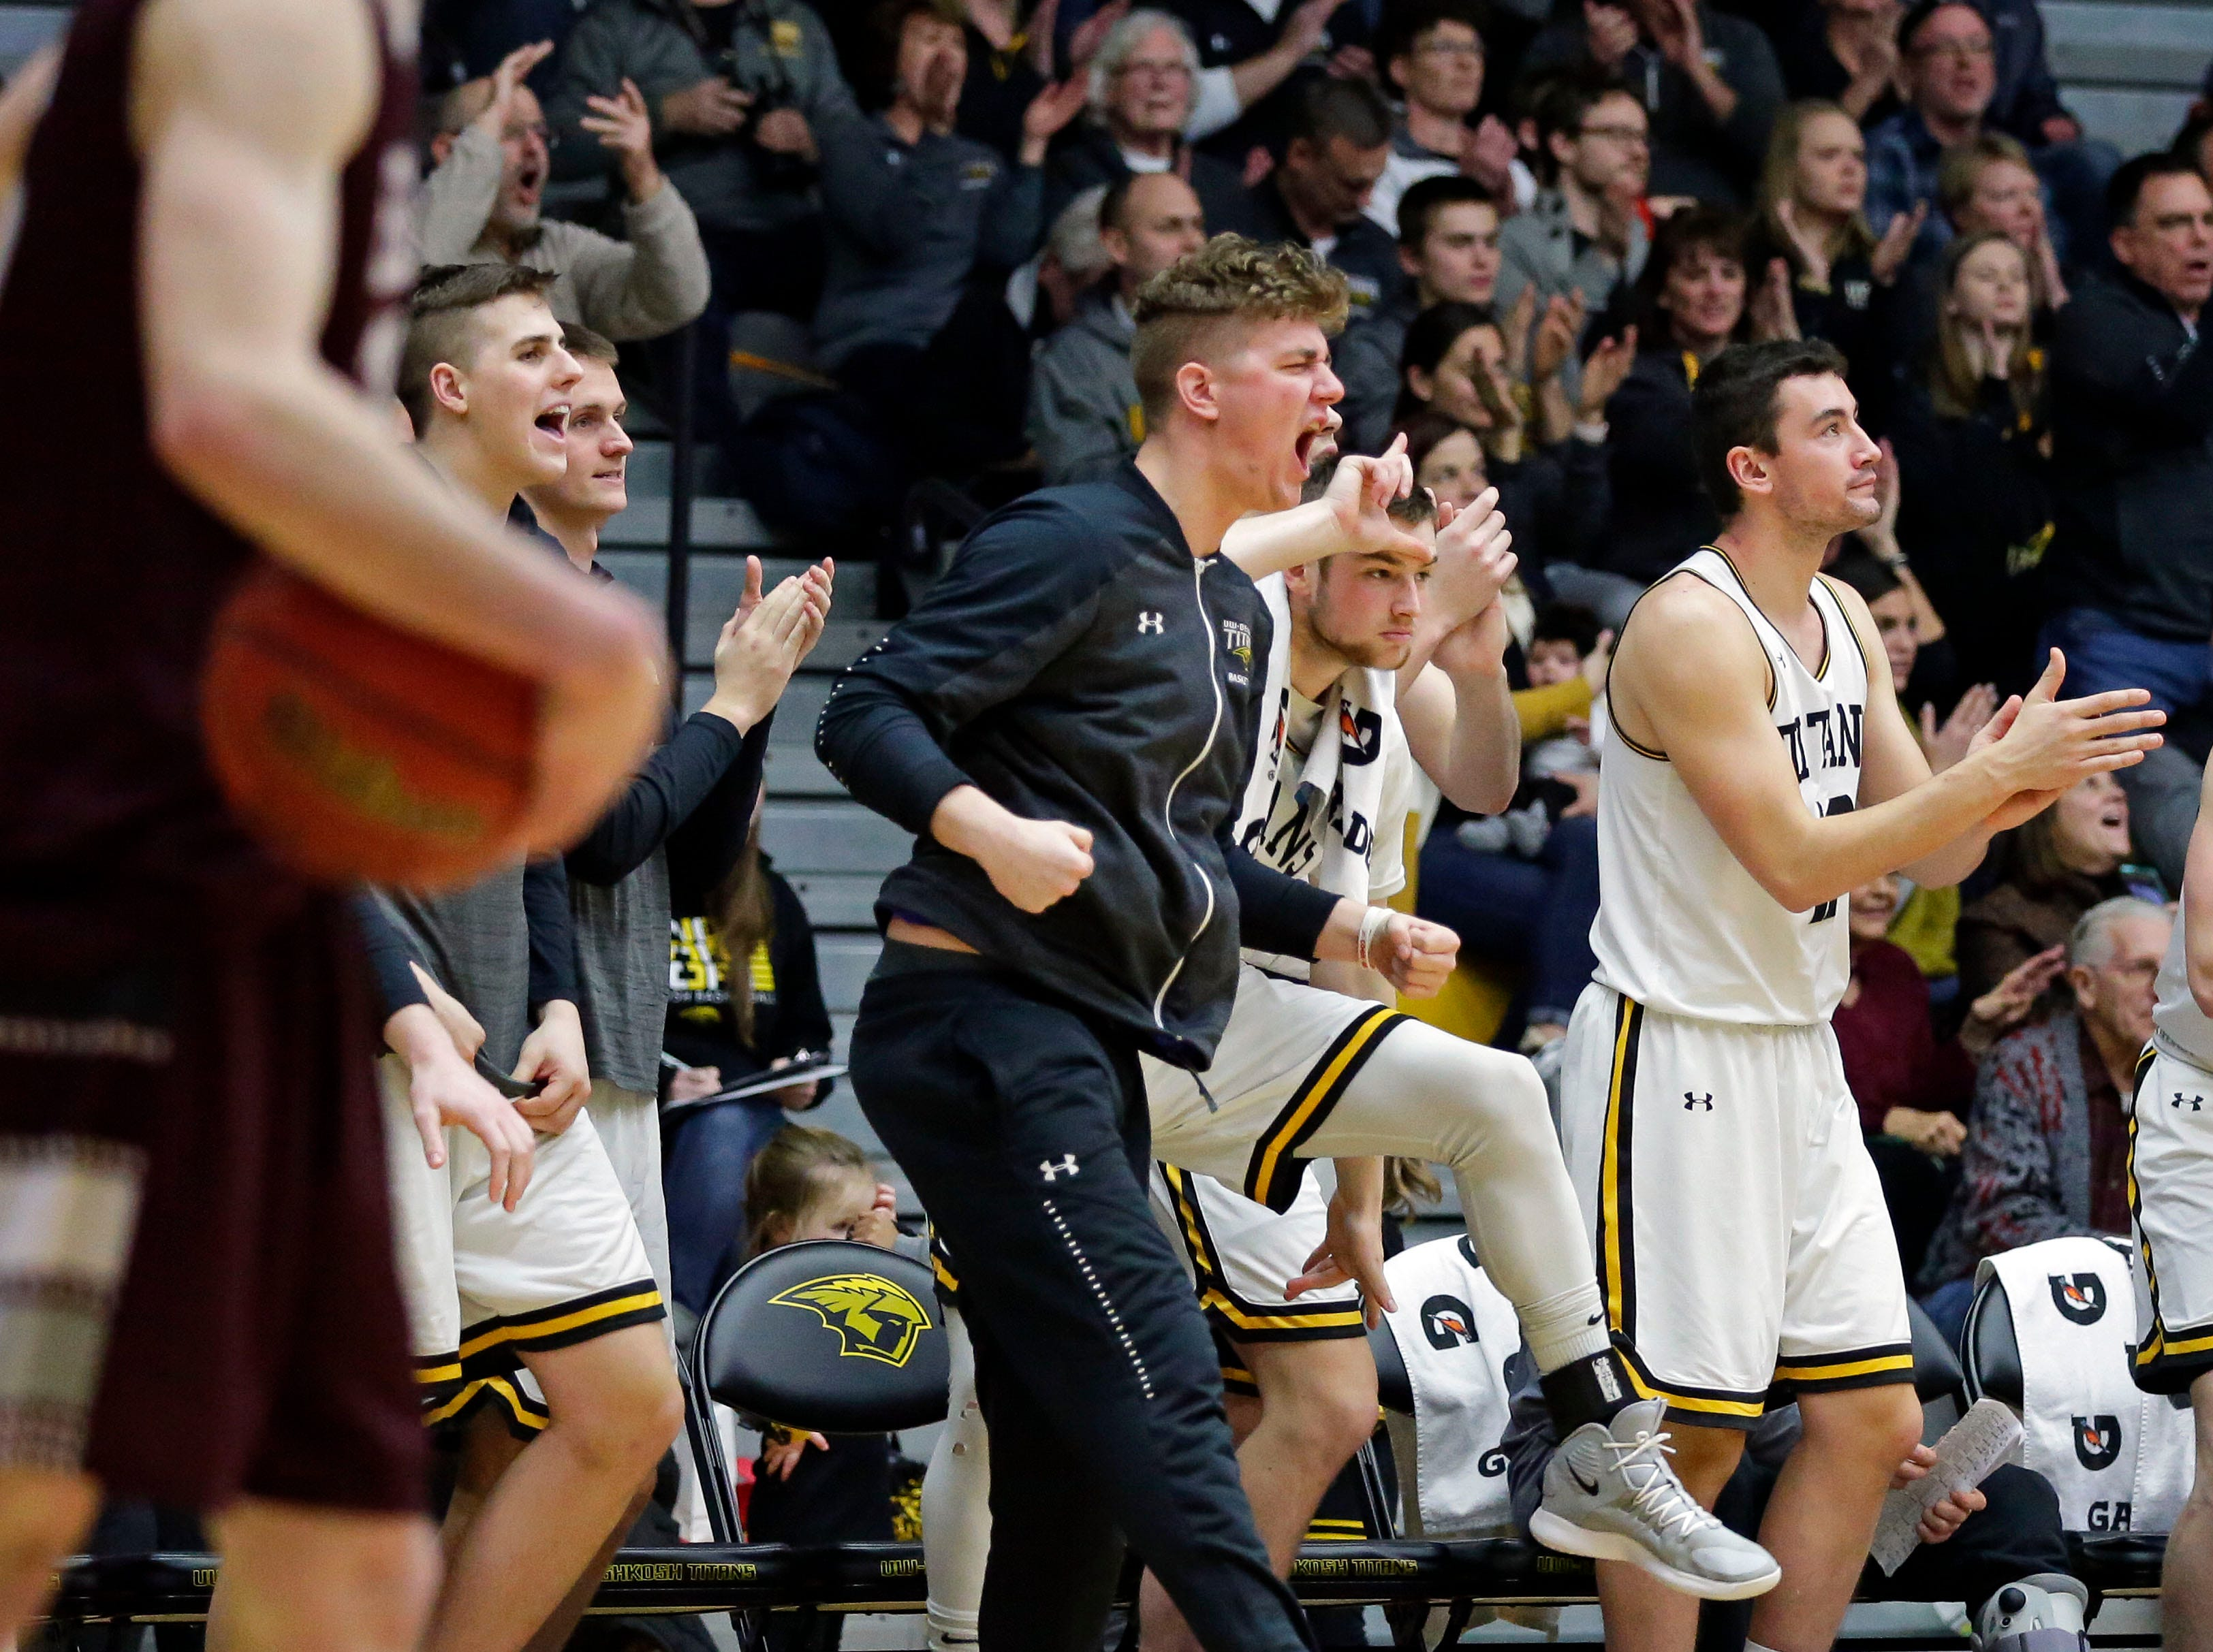 UW-Oshkosh players celebrate a play in the final minutes against UW-La Crosse in Wisconsin Intercollegiate Athletic Conference basketball Saturday, January 19, 2019, at Kolf Sports Center in Oshkosh, Wis. 